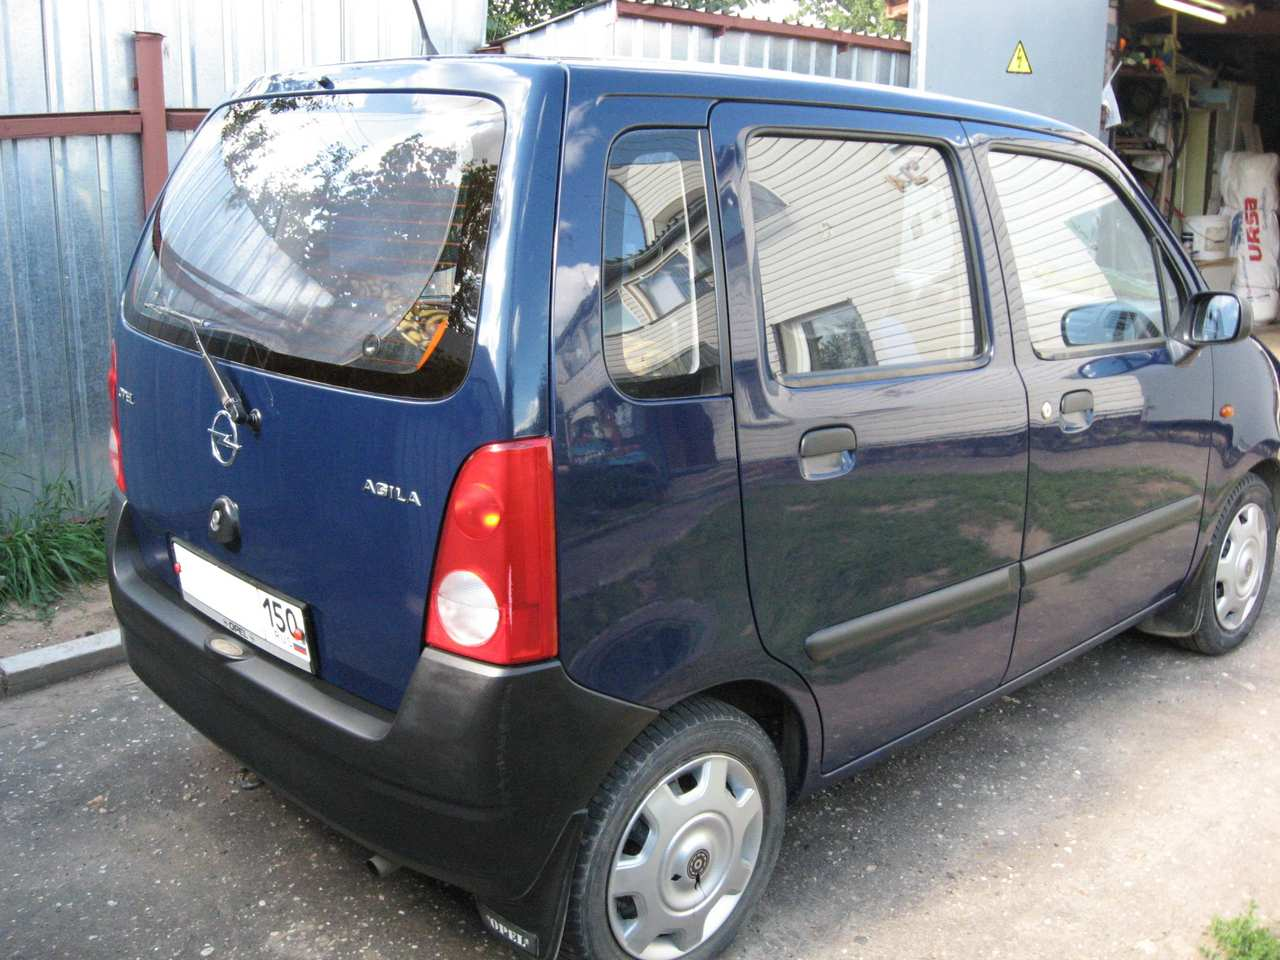 used 2001 opel agila photos 973cc gasoline ff manual for sale. Black Bedroom Furniture Sets. Home Design Ideas